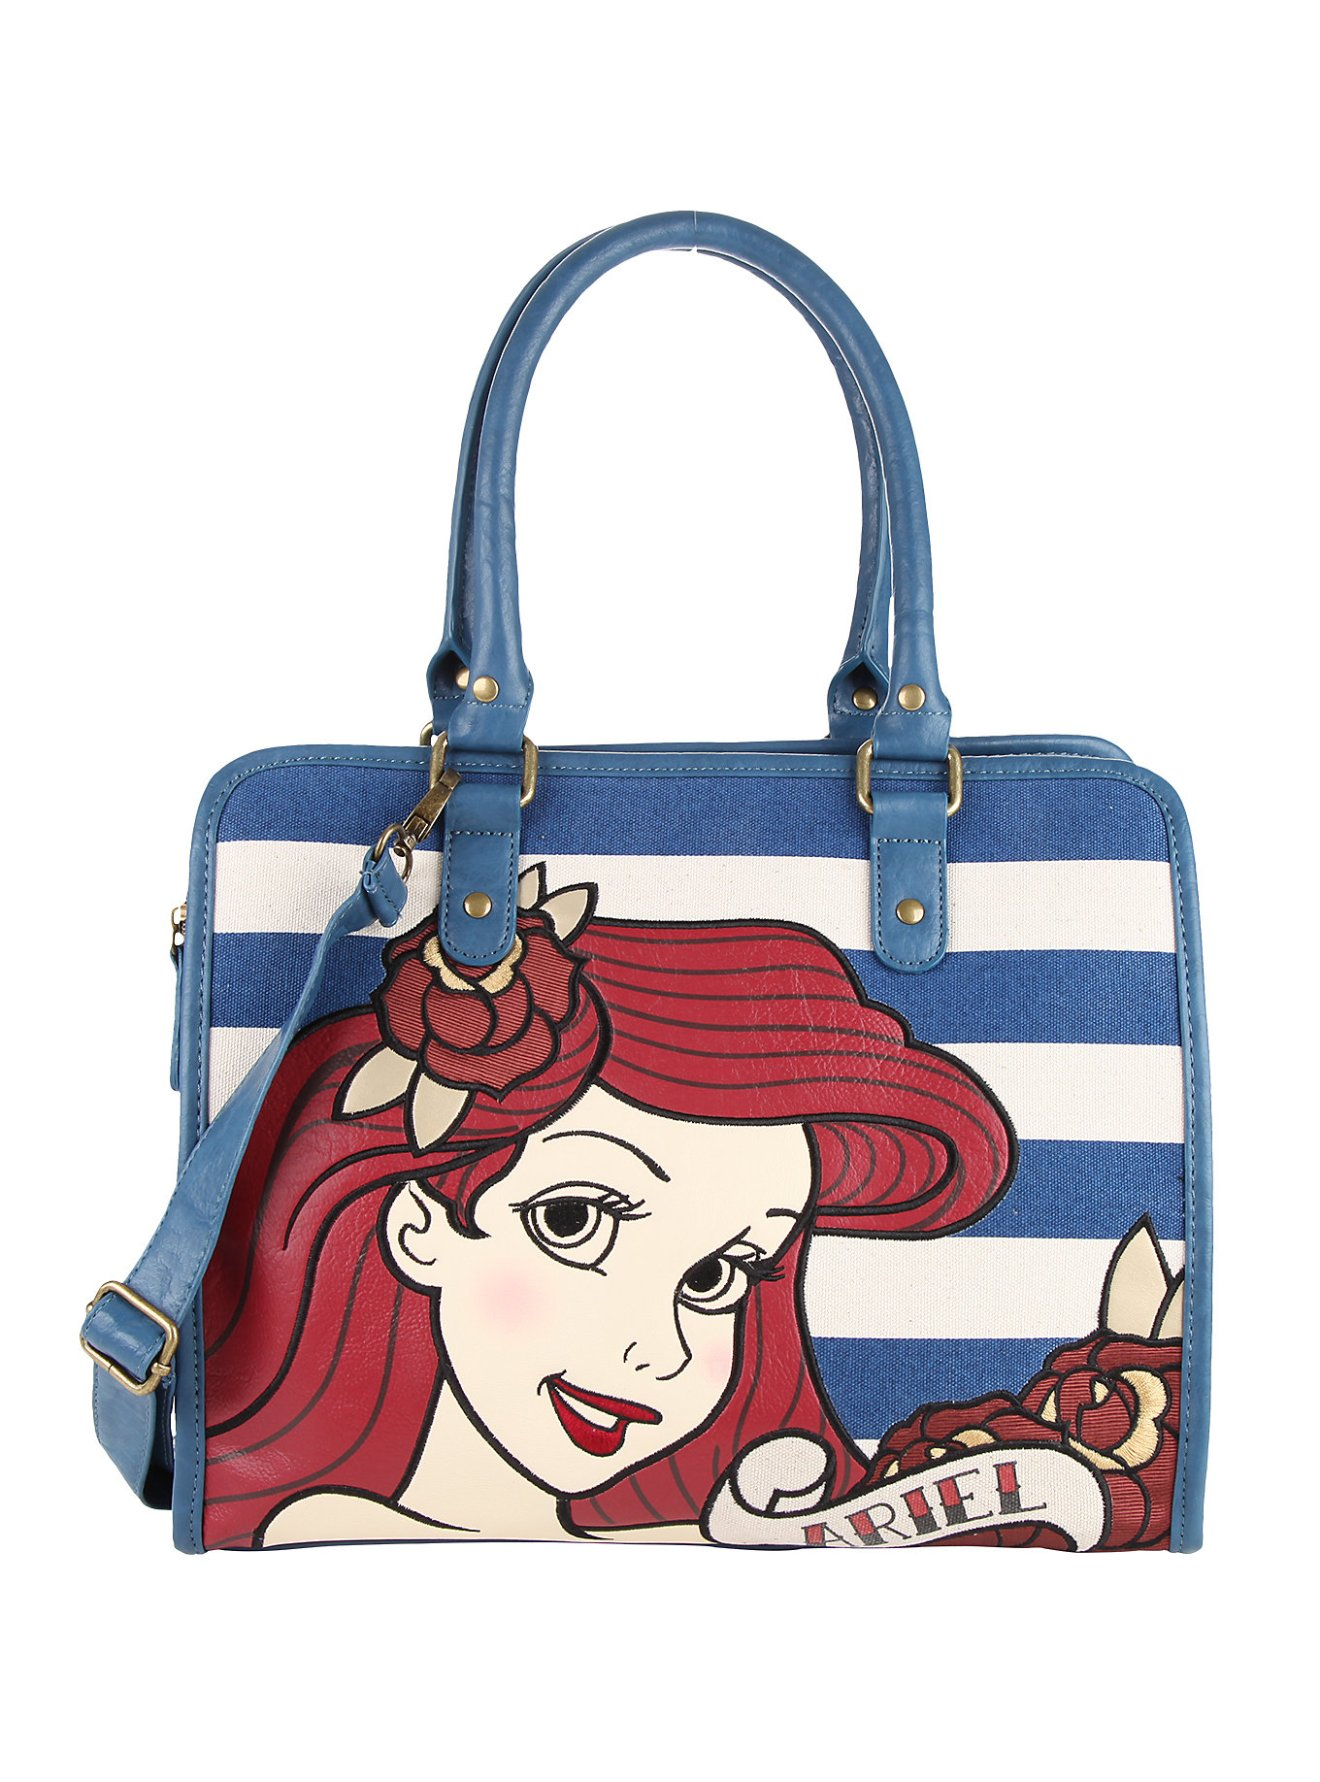 The Little Mermaid Purses On Sale At Hot Topic